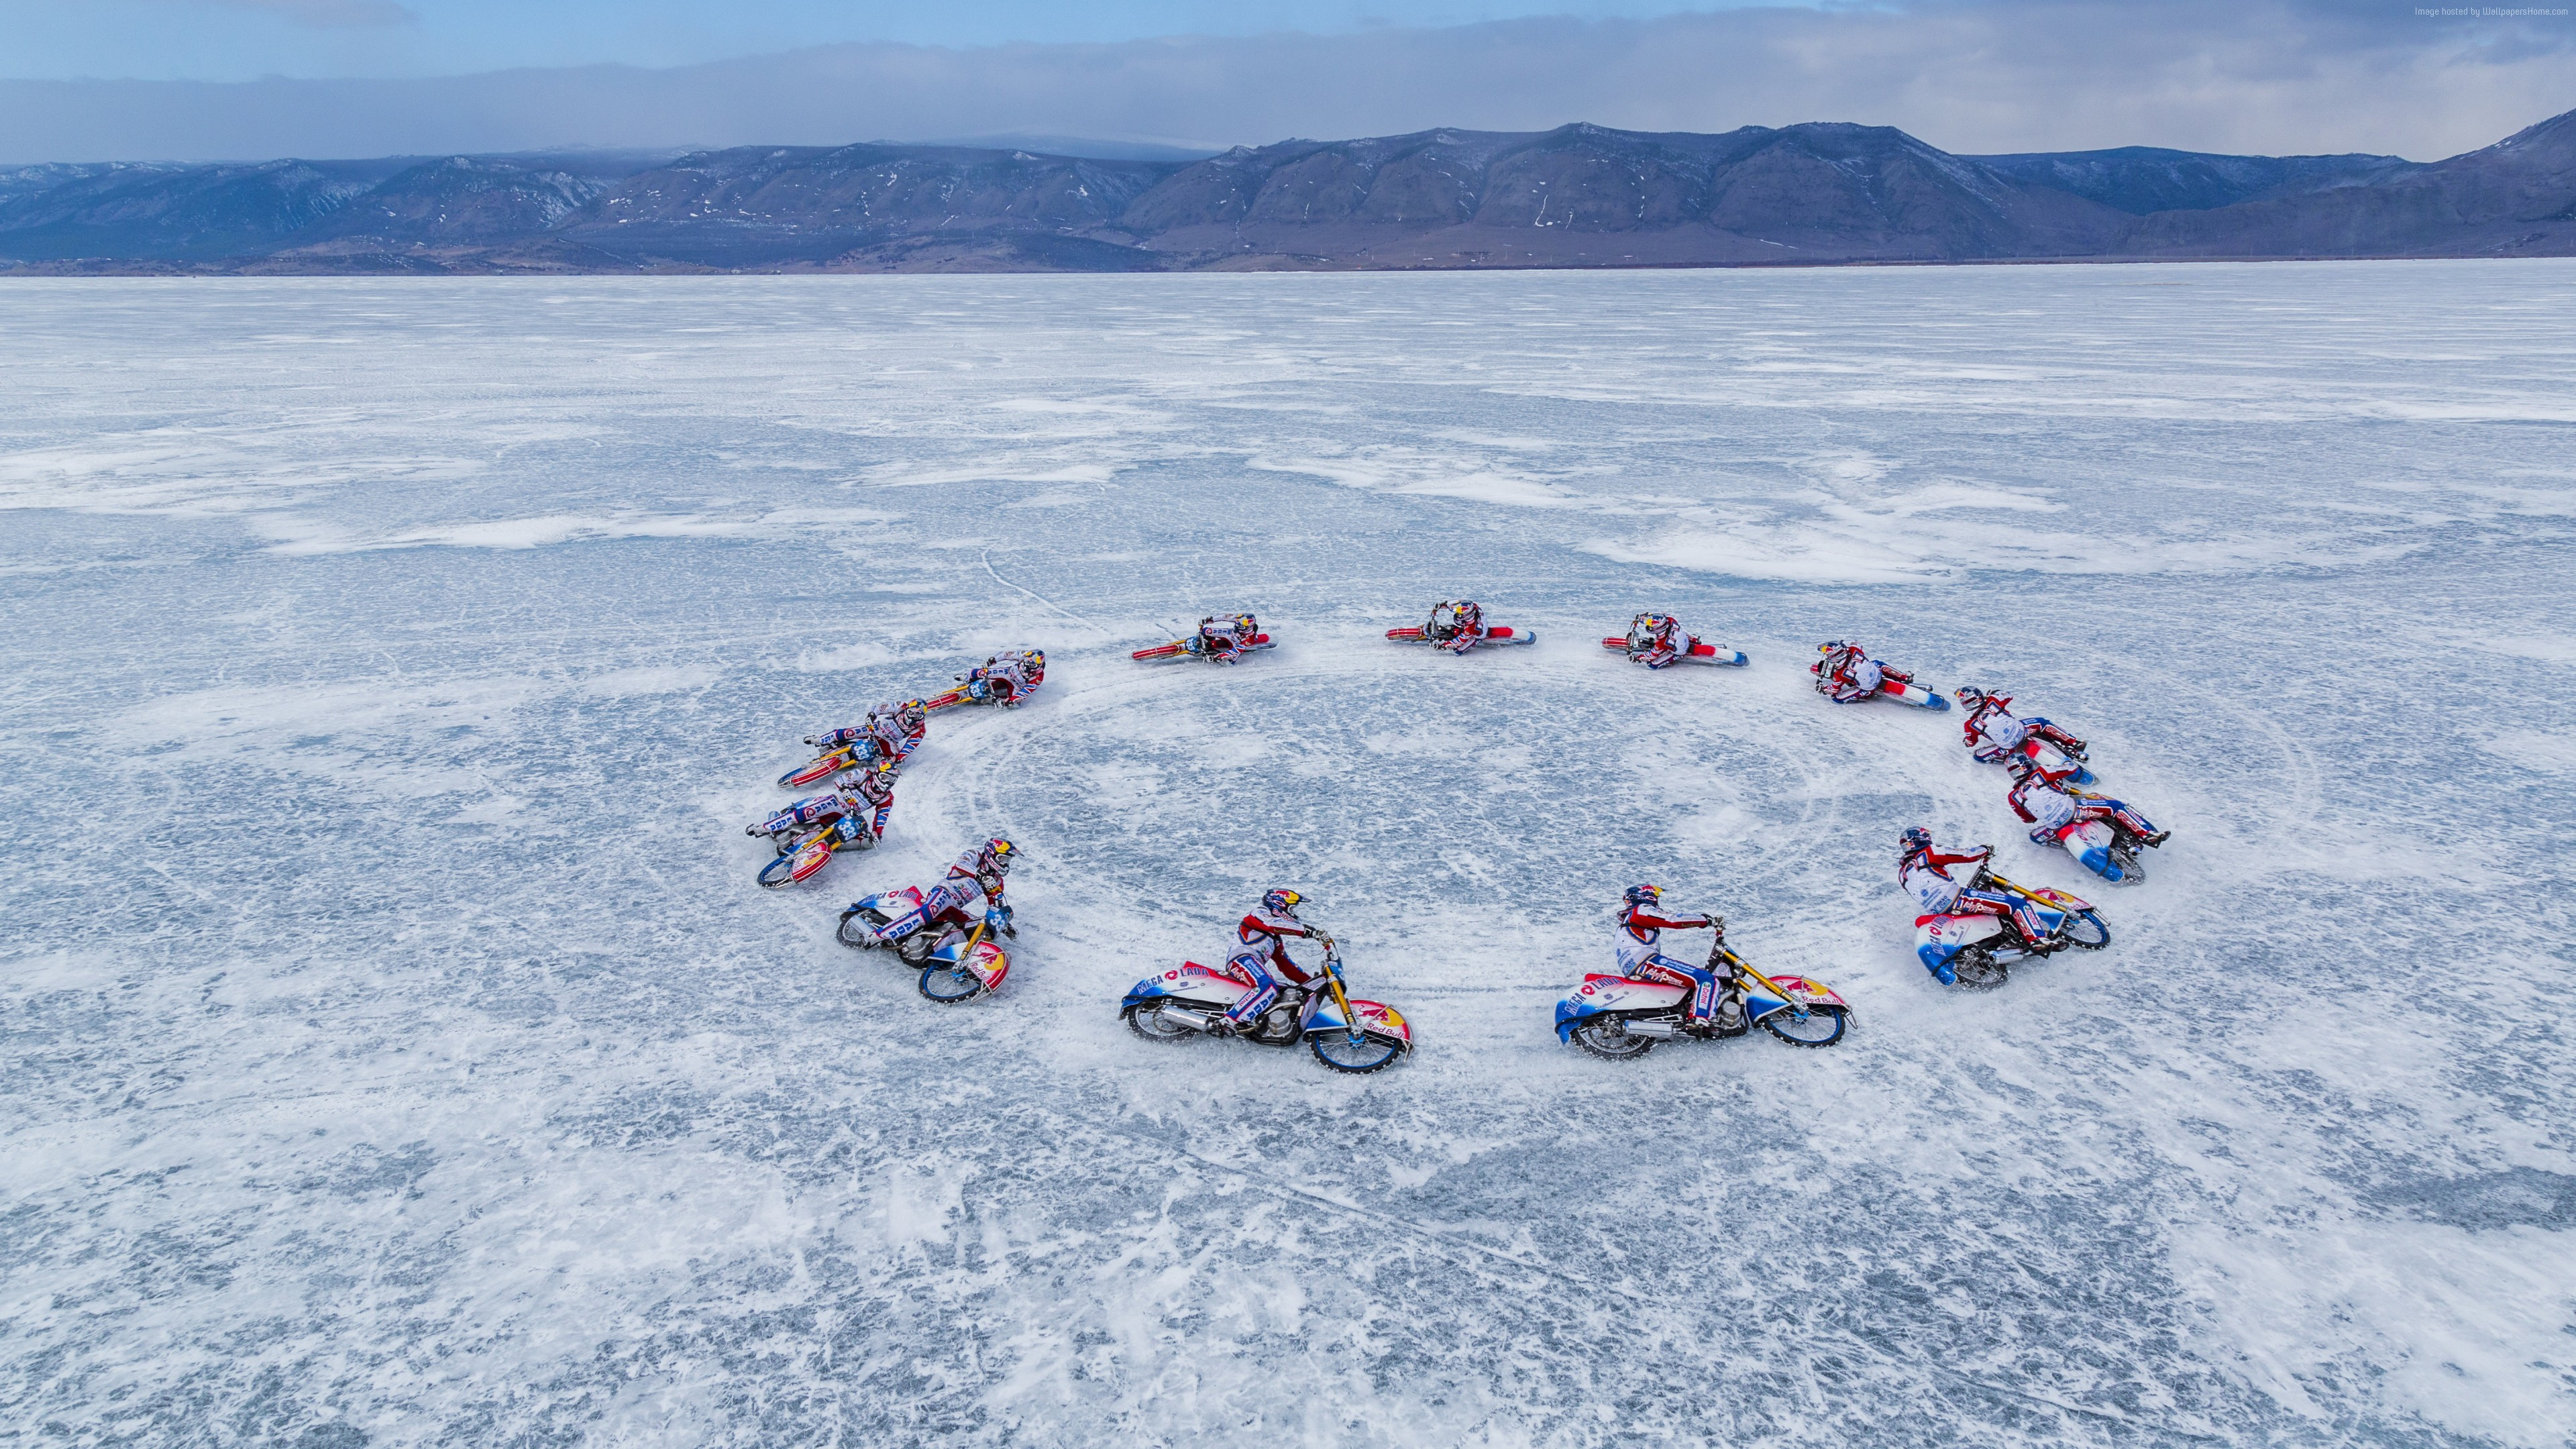 Wallpaper Lake Baikal, ice, motorcyclists, 5k, Sport